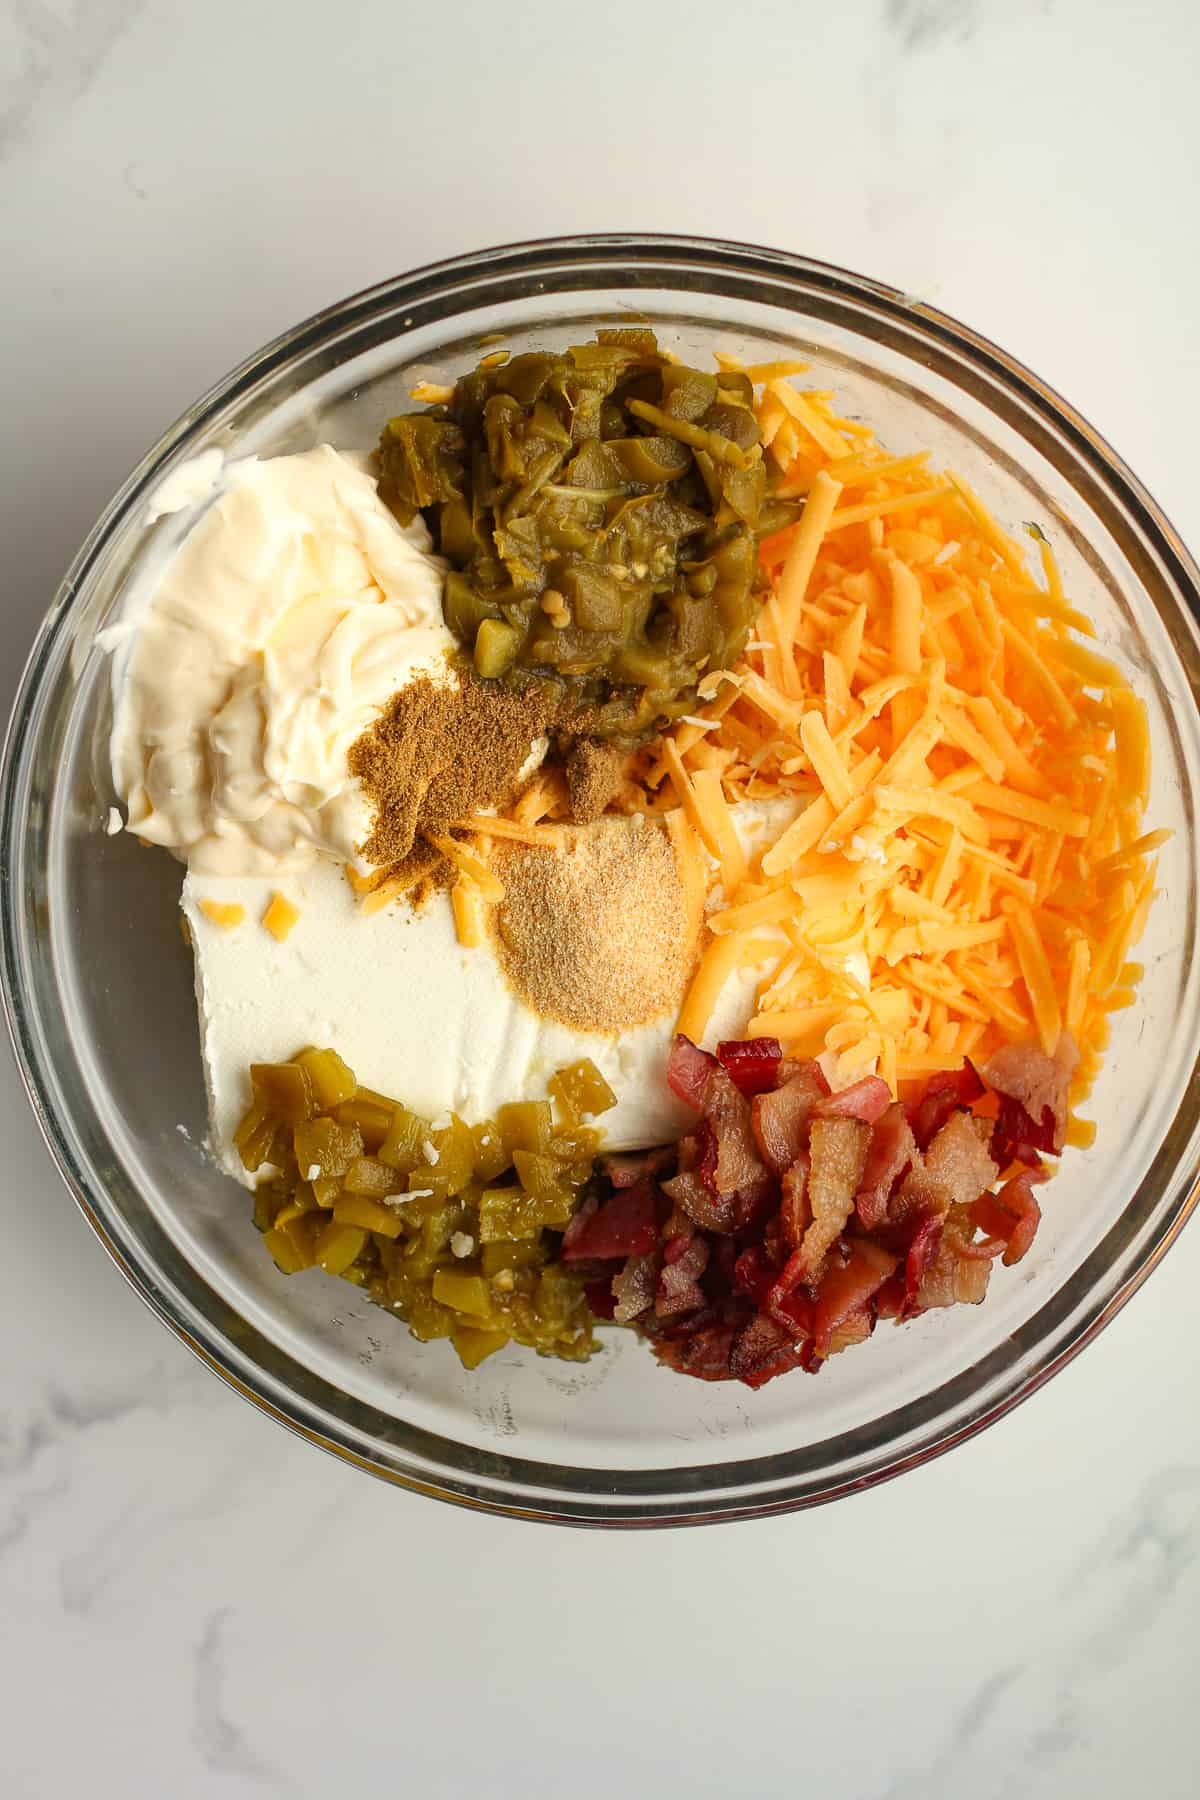 A glass bowl of the dip ingredients.